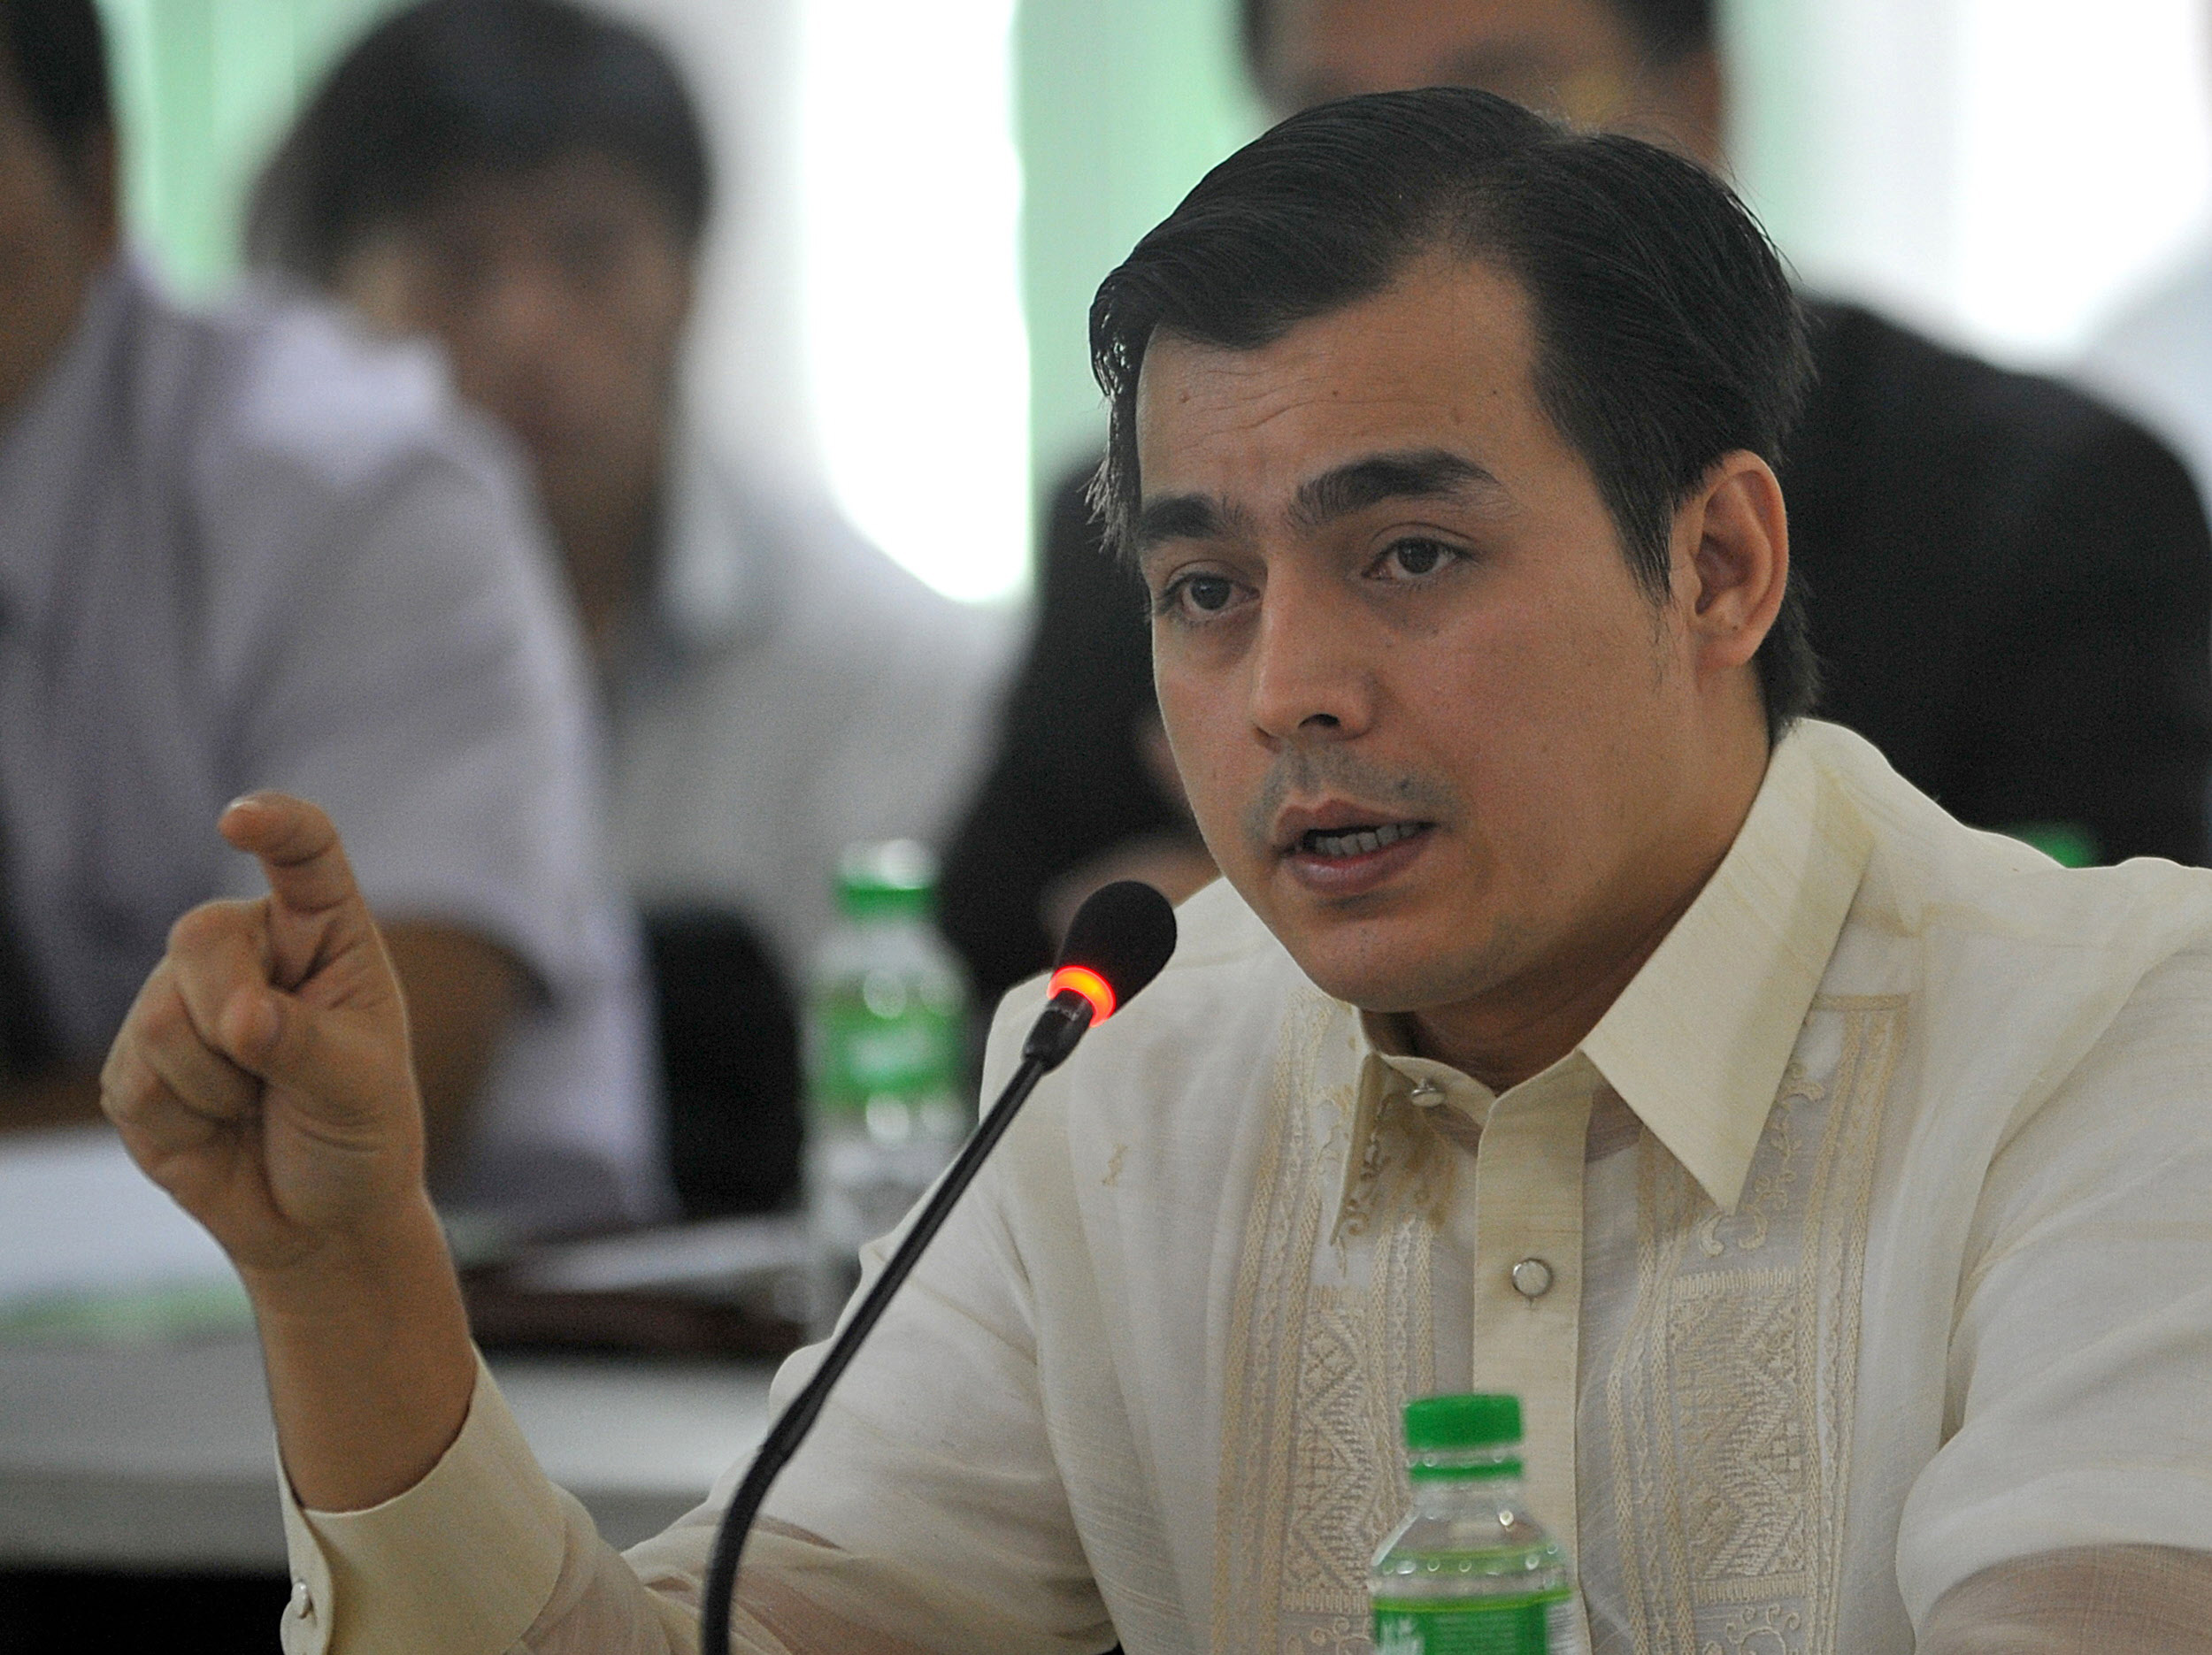 Manila City Vice Mayor Francisco Domagoso answers questions during a justice department hearing investigating last week's botched bus hijack rescue attempt in Manila September 4, 2010. REUTERS/Noel Celis/Pool